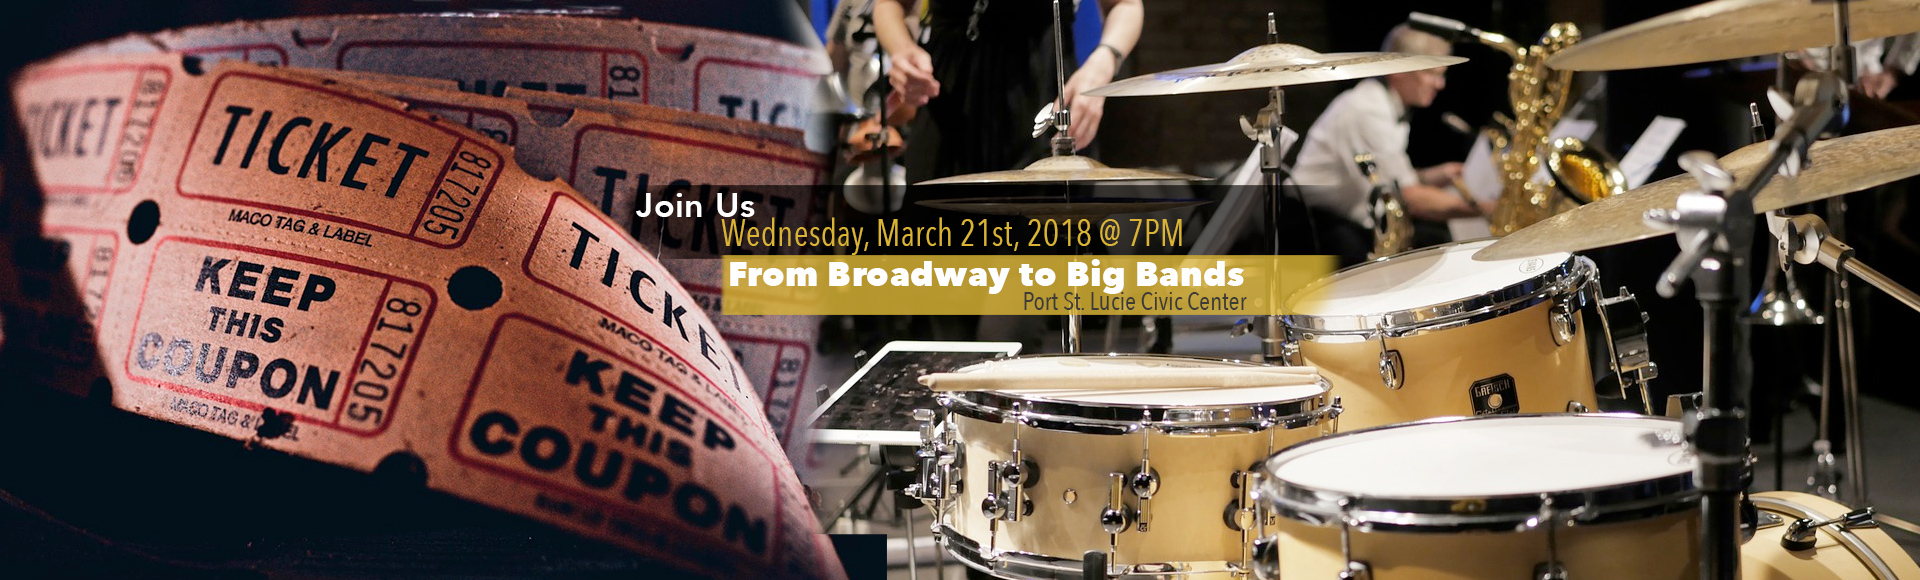 From Broadway To Big Bands Concert